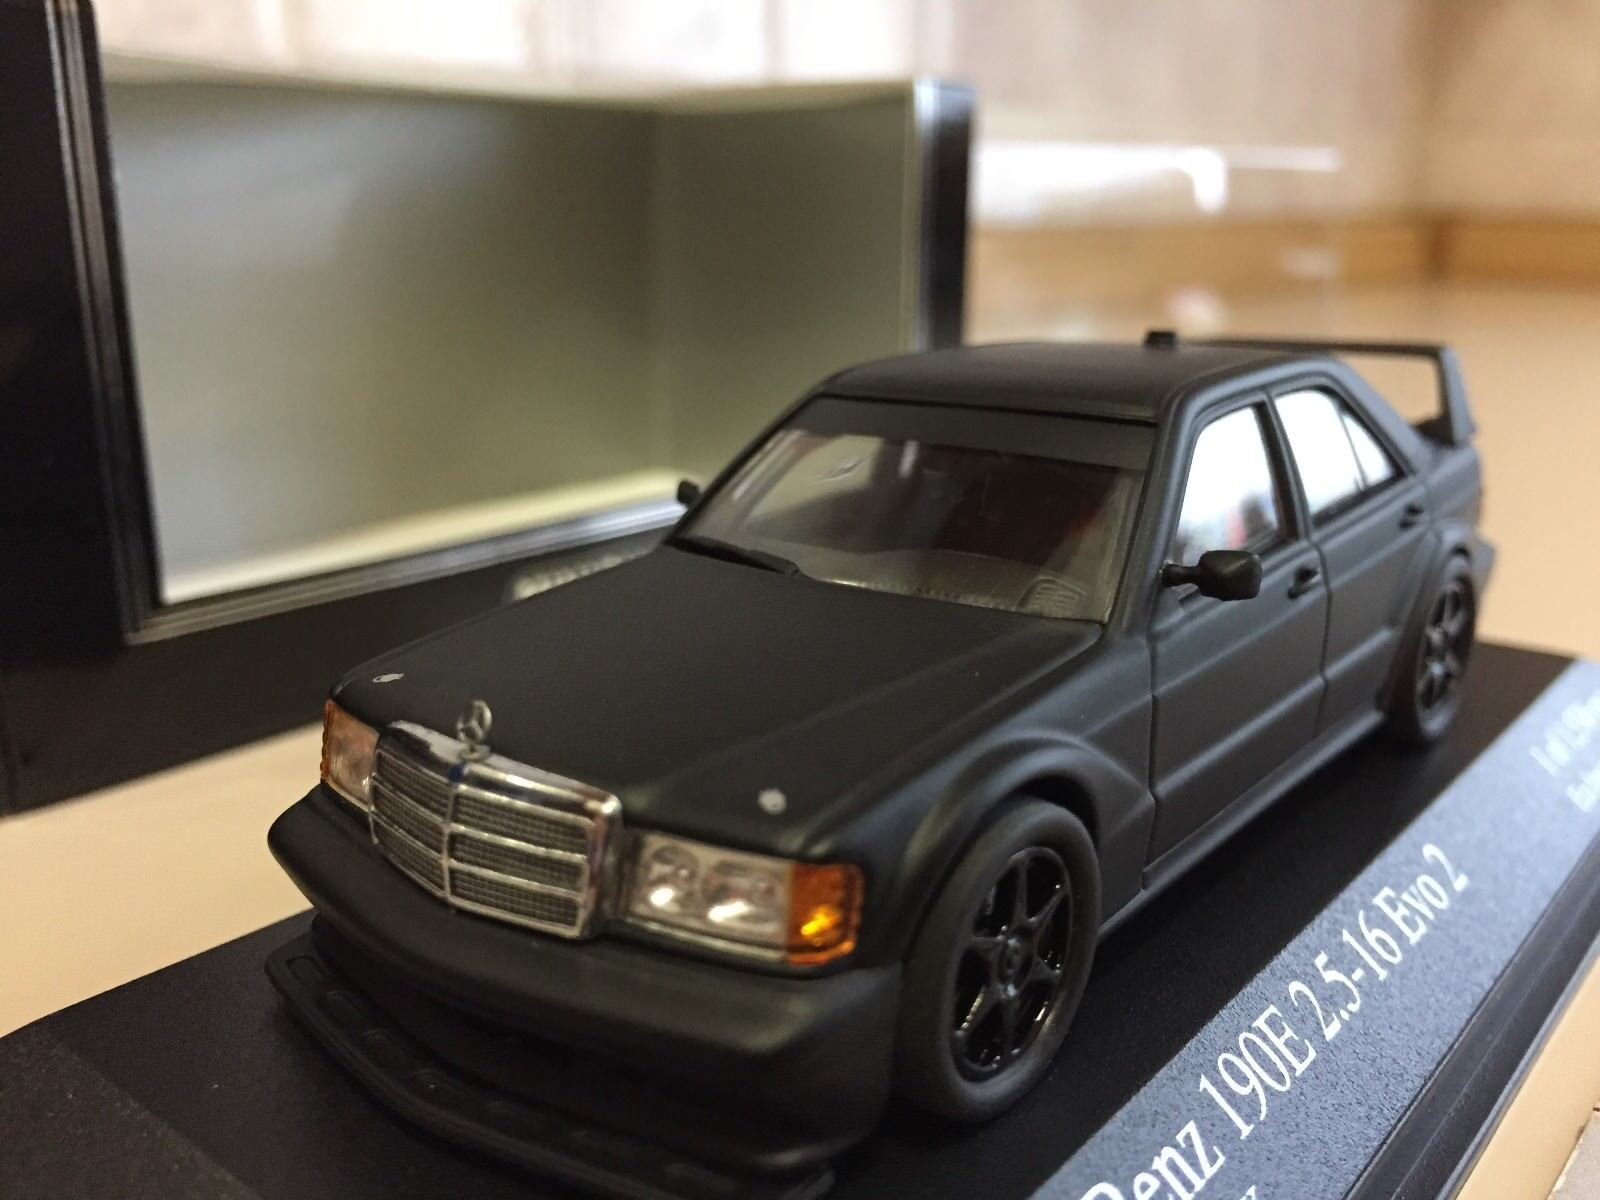 MINICHAMPS FOR KYOSHO 1 43 MERCEDES 190E 2.5-16 EVO 2 HOMOLOGATION IN nero NEW